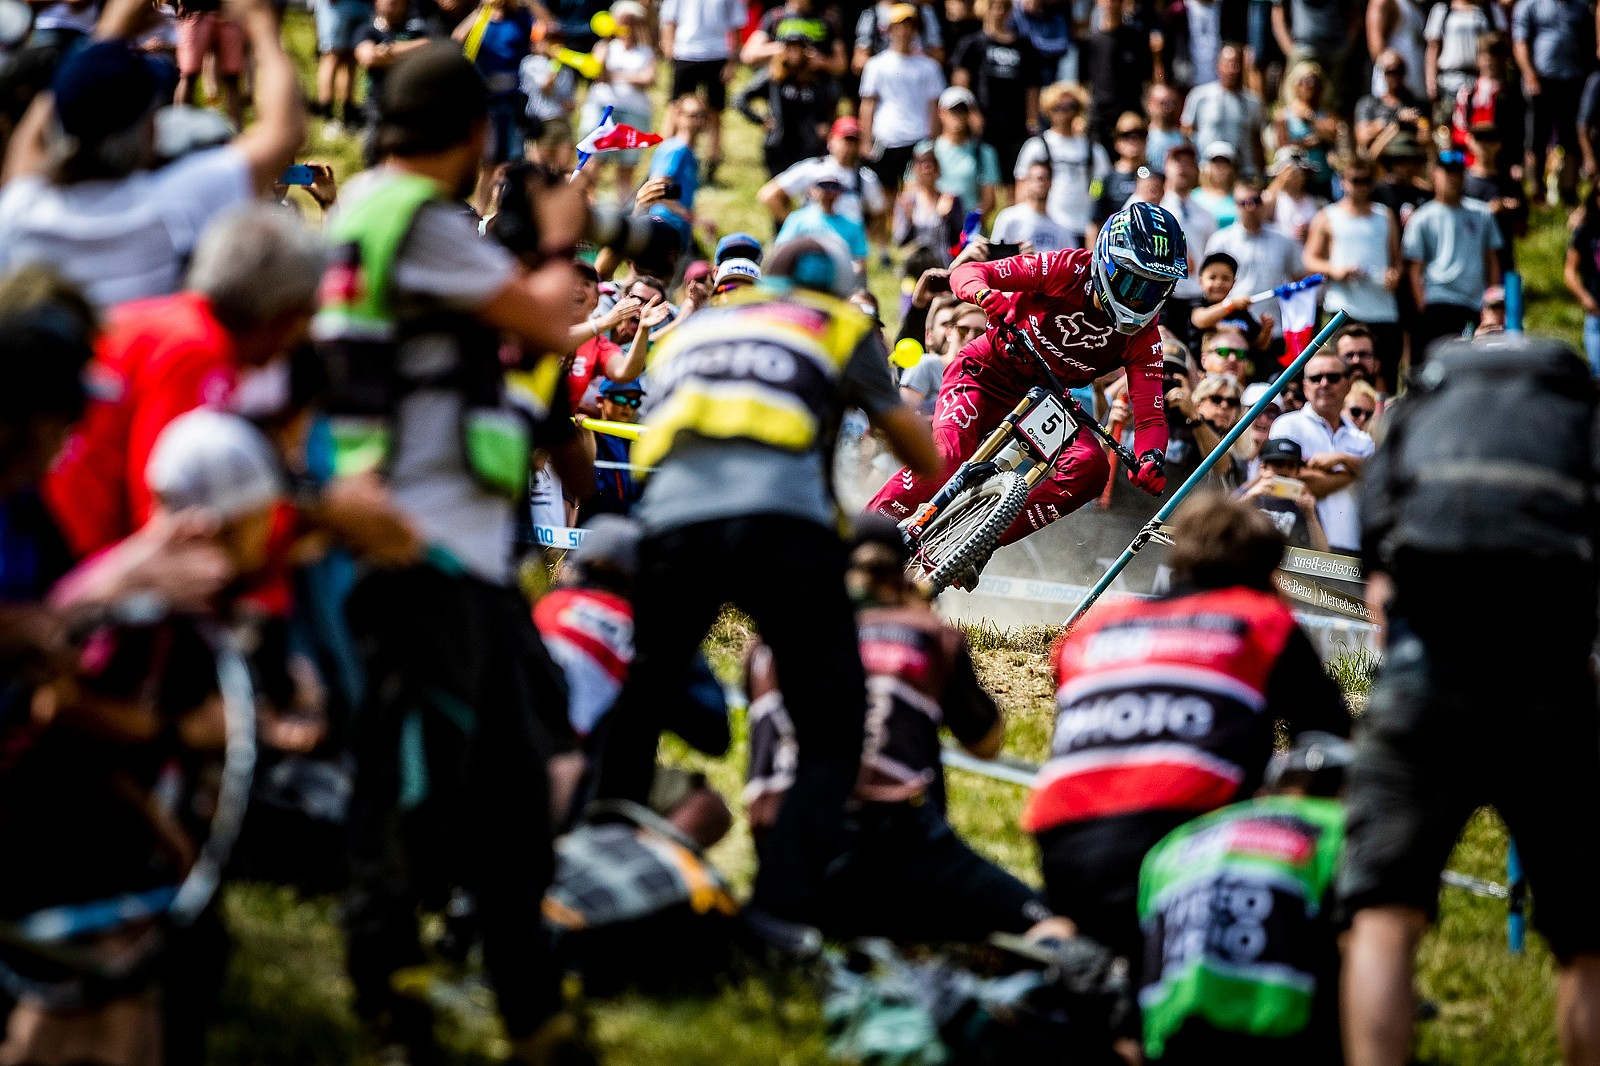 Loris Threading Needles in Les Gets - Loris Vergier 2019 World Cup Downhill Photos - Mountain Biking Pictures - Vital MTB